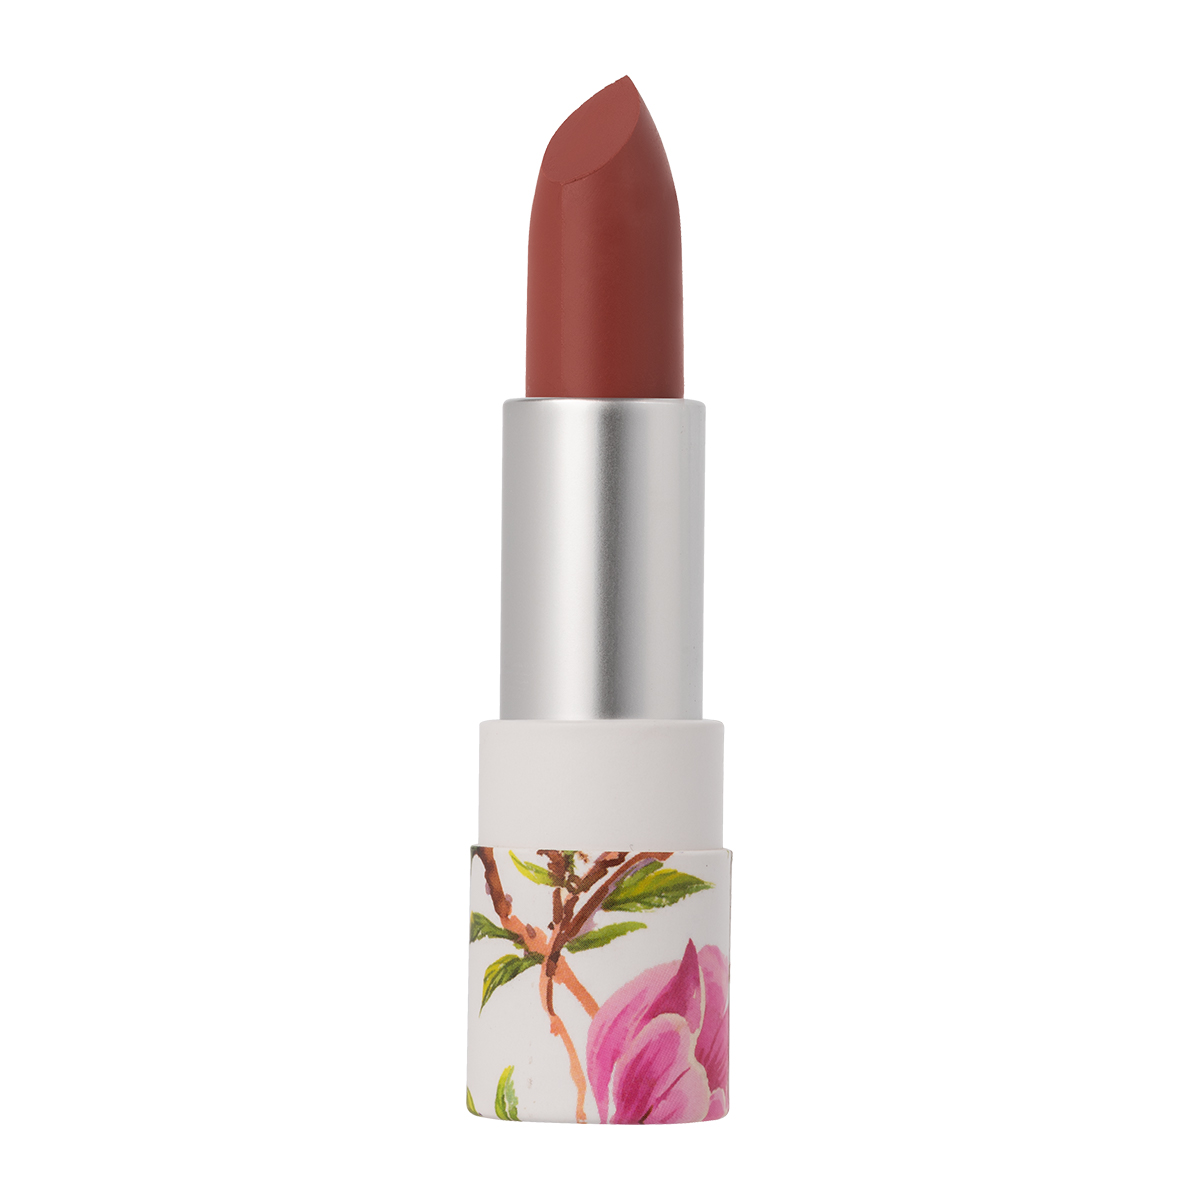 Glossy Lips Floral